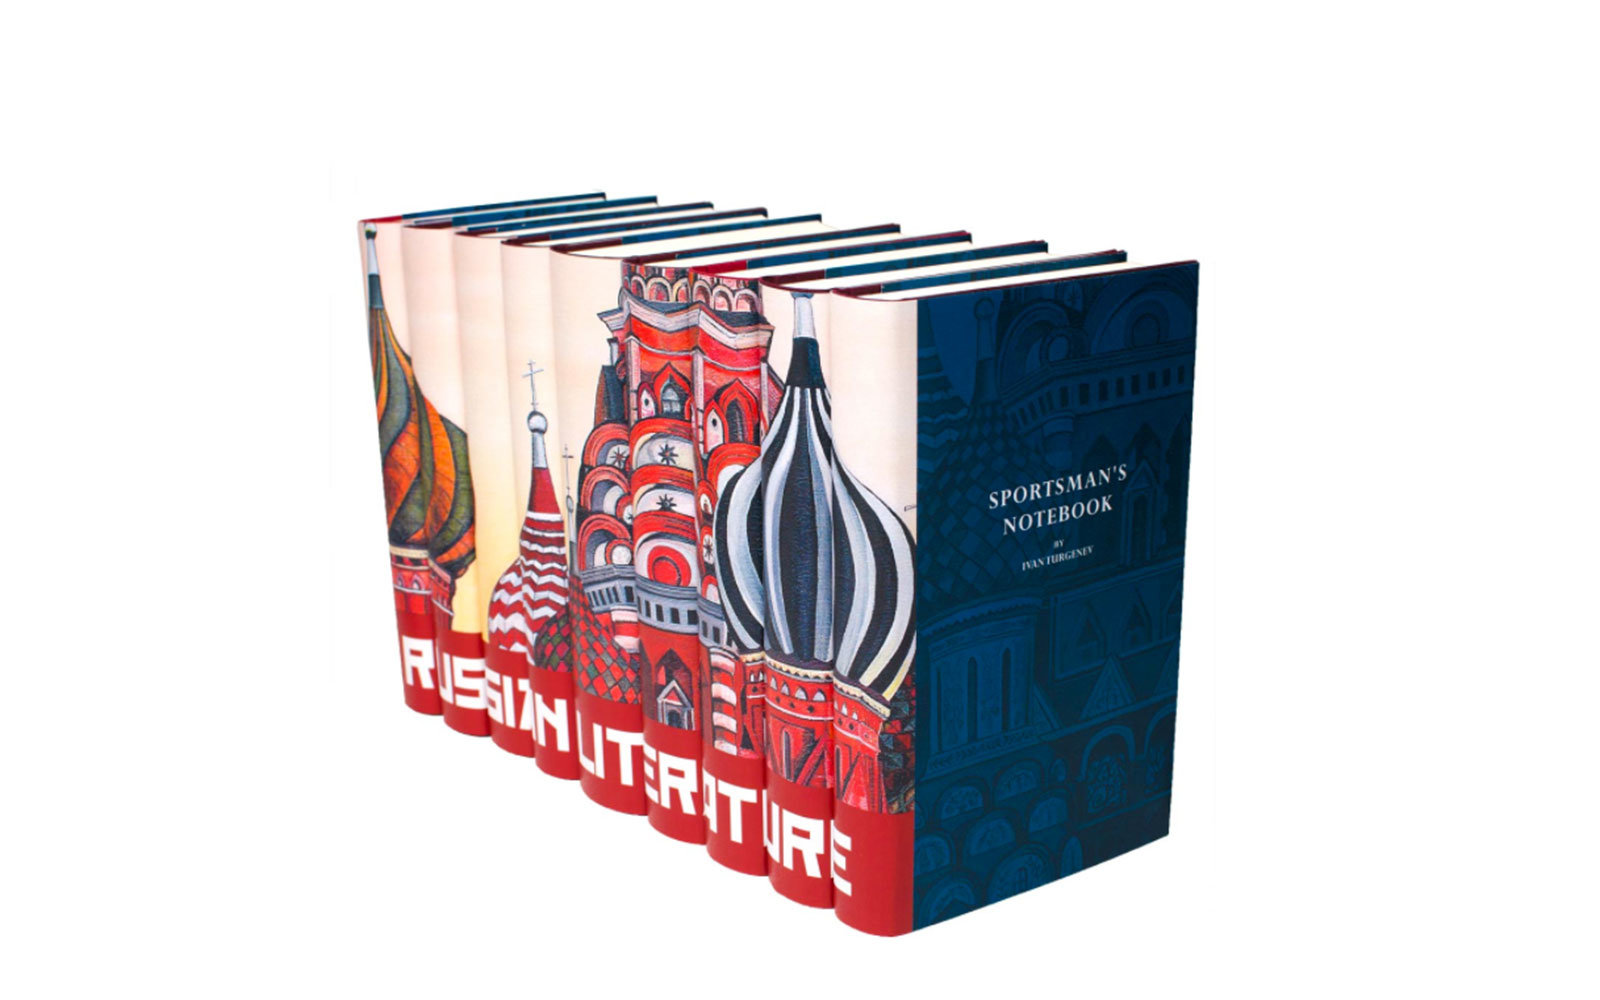 Travel Wedding Gifts: Russian Literature Set